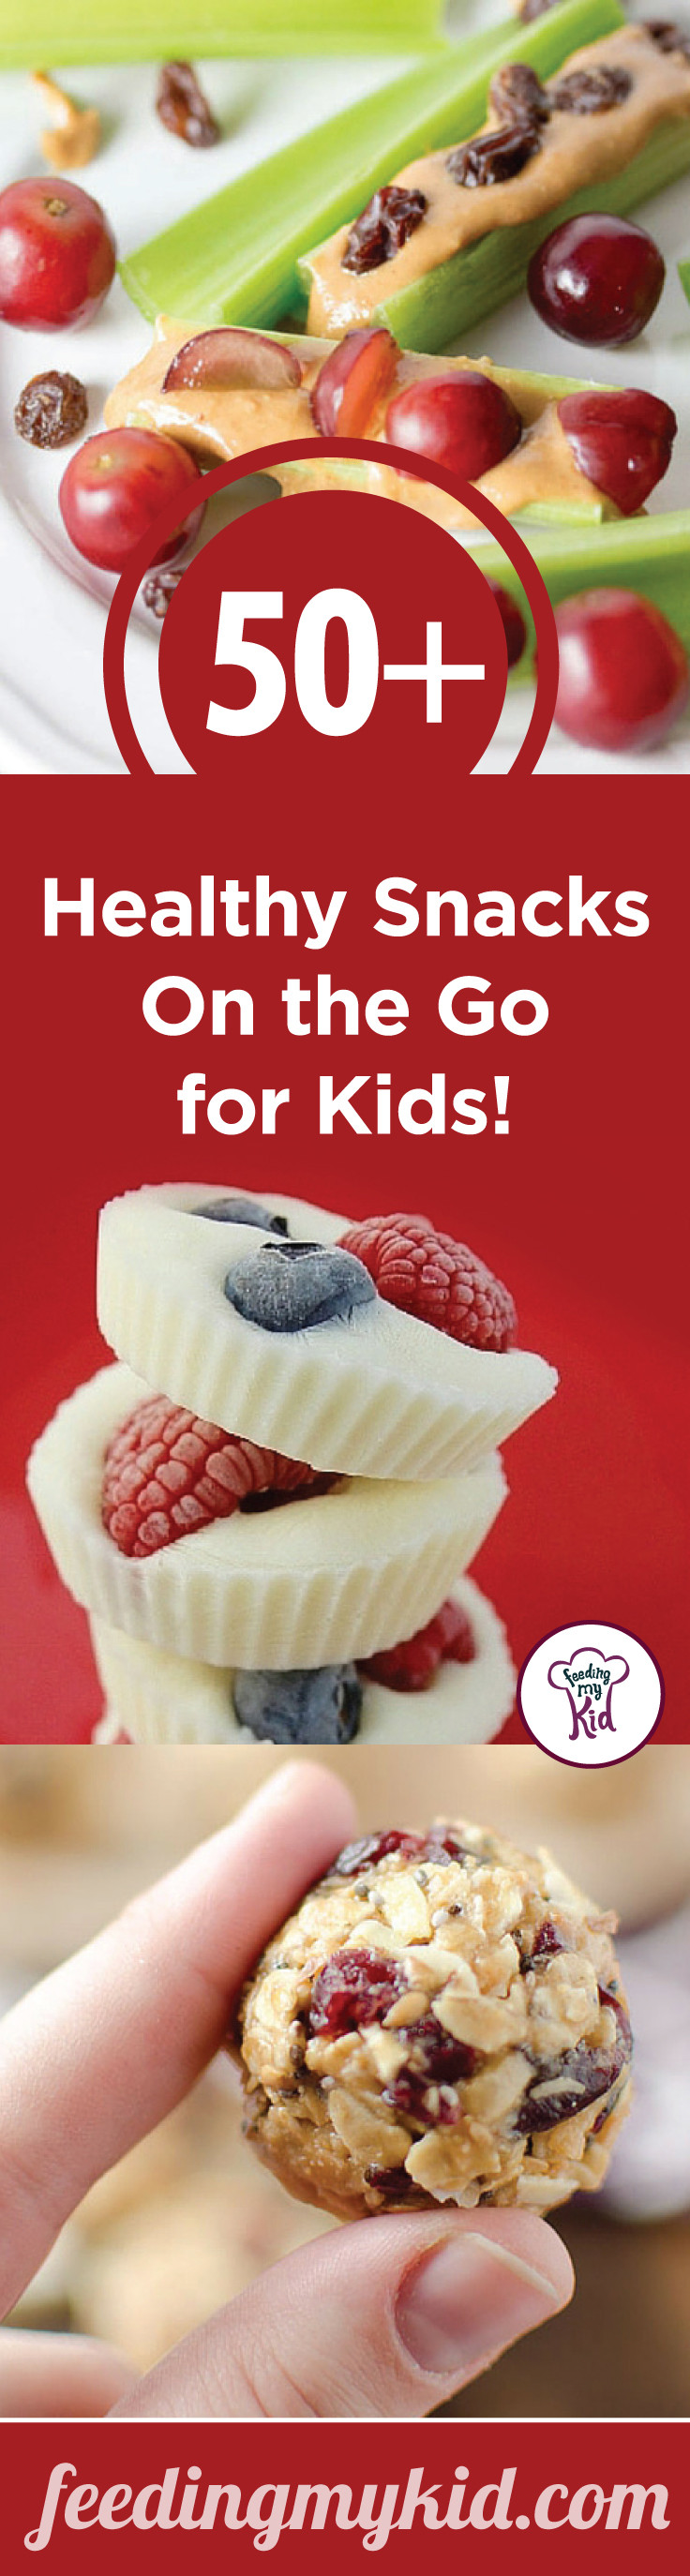 Easy Healthy Snacks On The Go  Easy Snacks for Kids 50 Healthy Snacks the Go